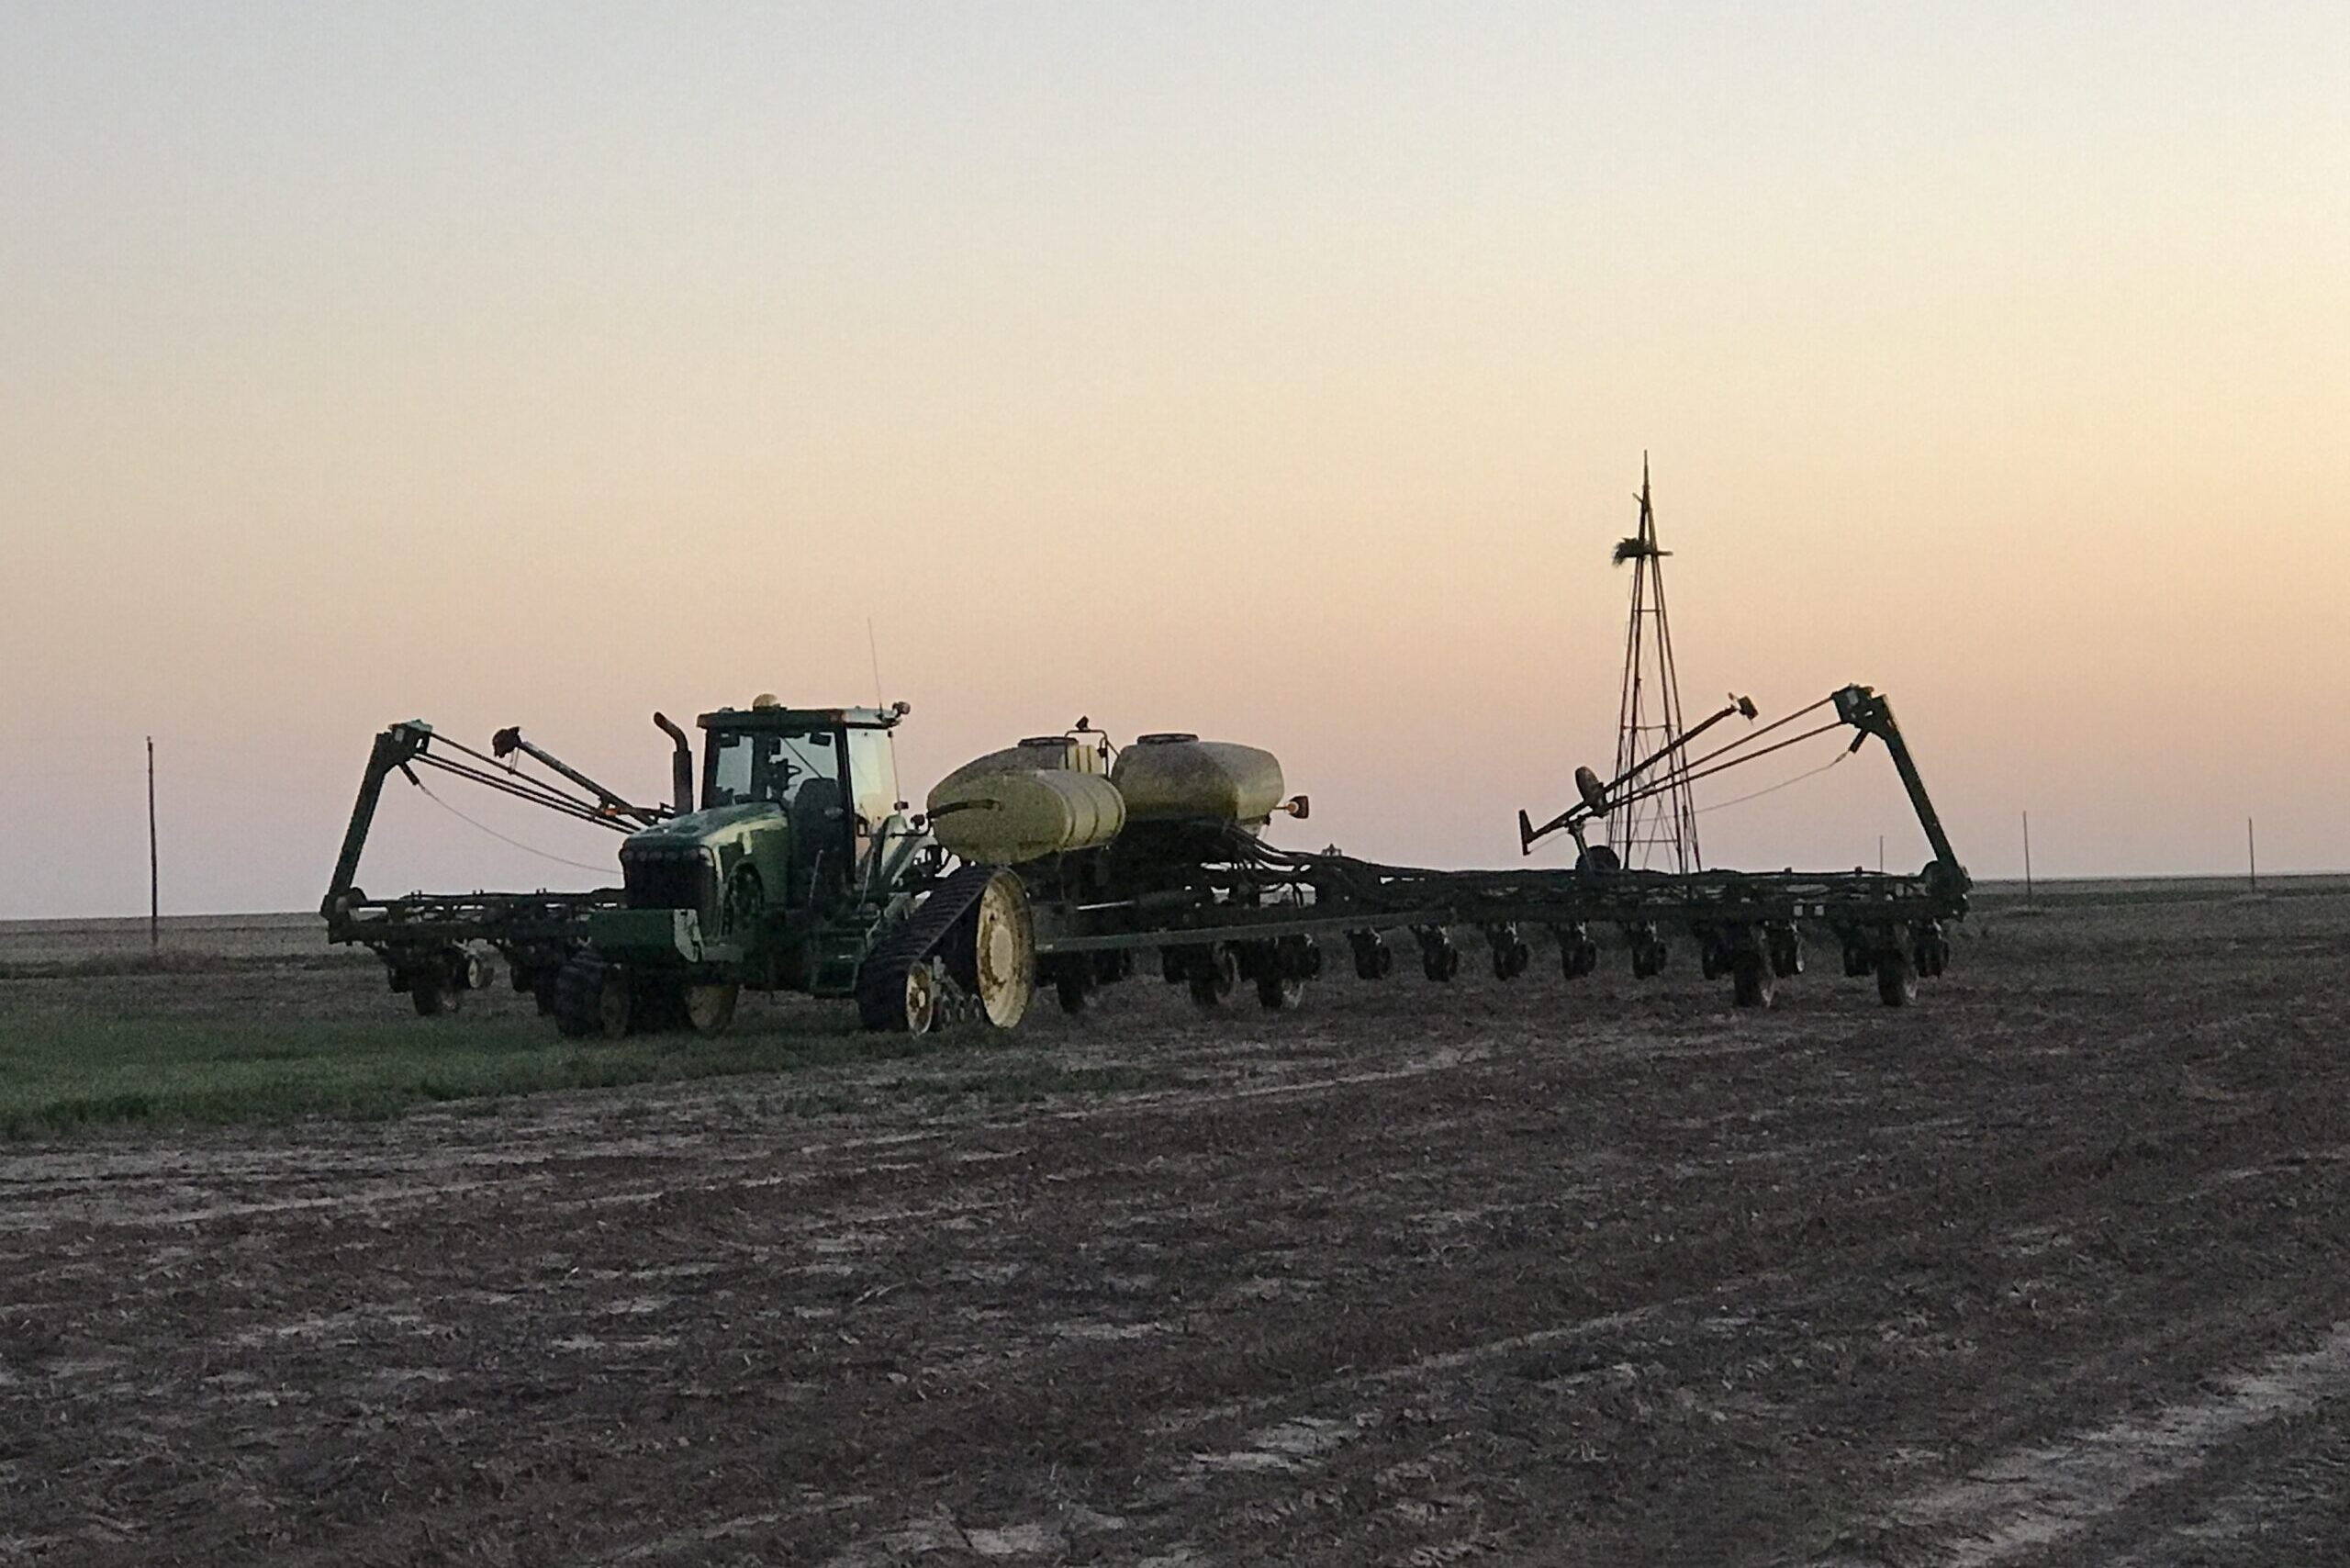 A planter hard at work planting sunflower seeds at dusk on Colorado's Eastern Plains.